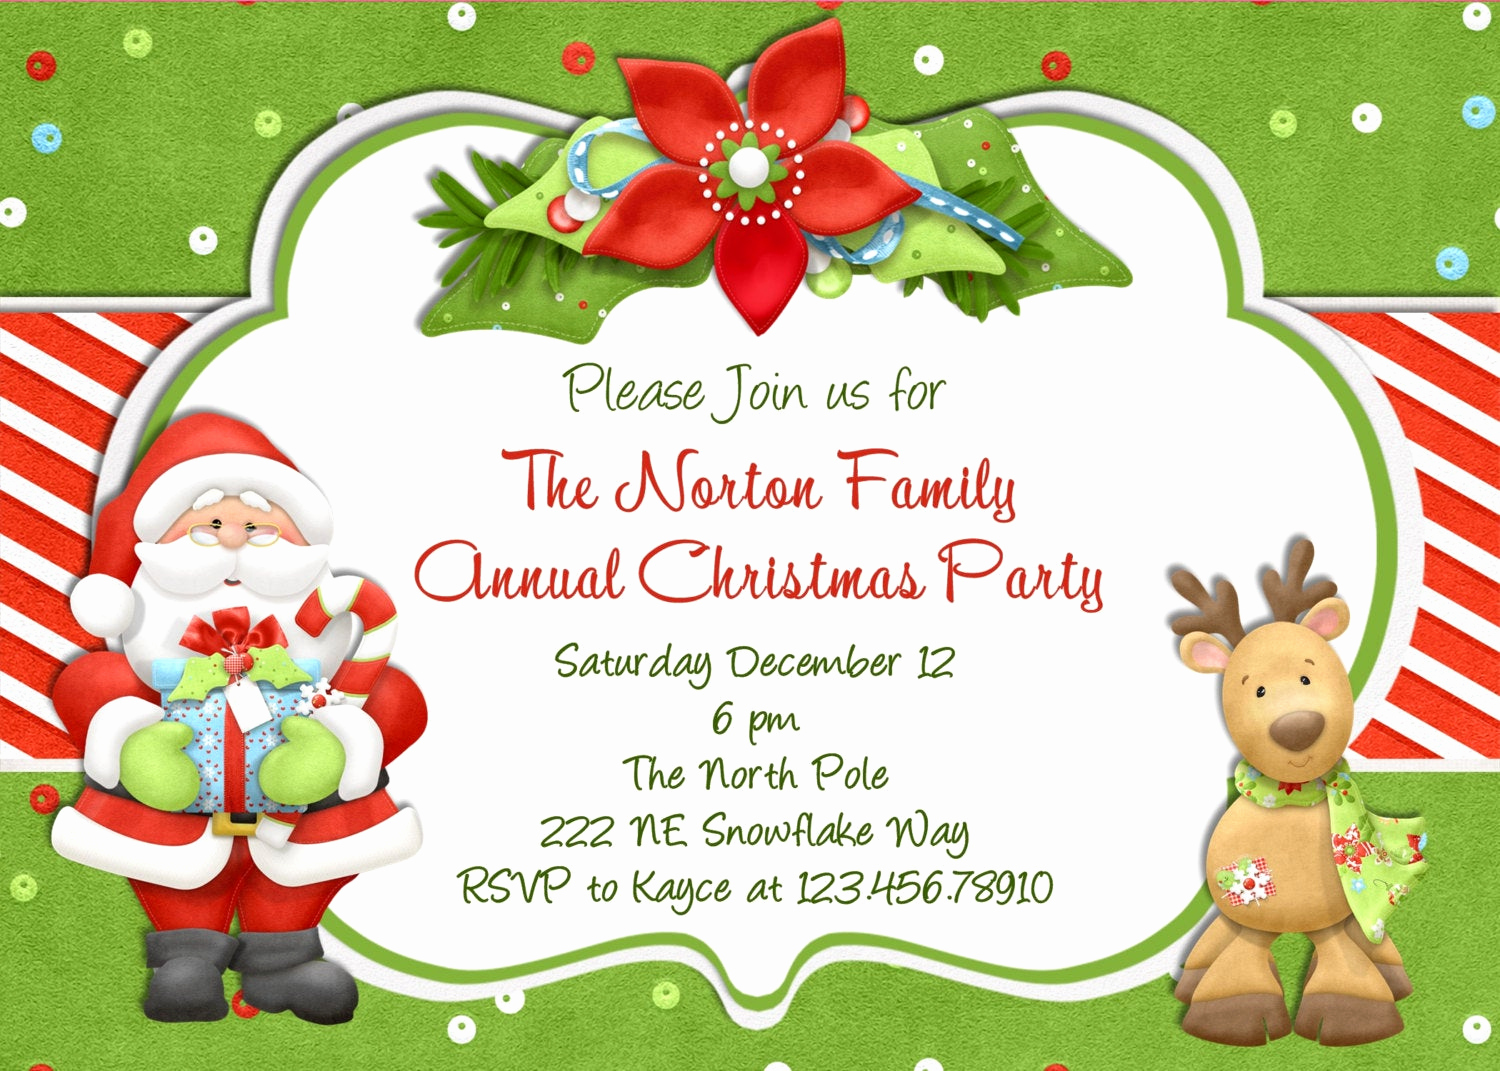 Christmas Party Invitations Free Unique Christmas Party Invitation Christmas Holiday Party